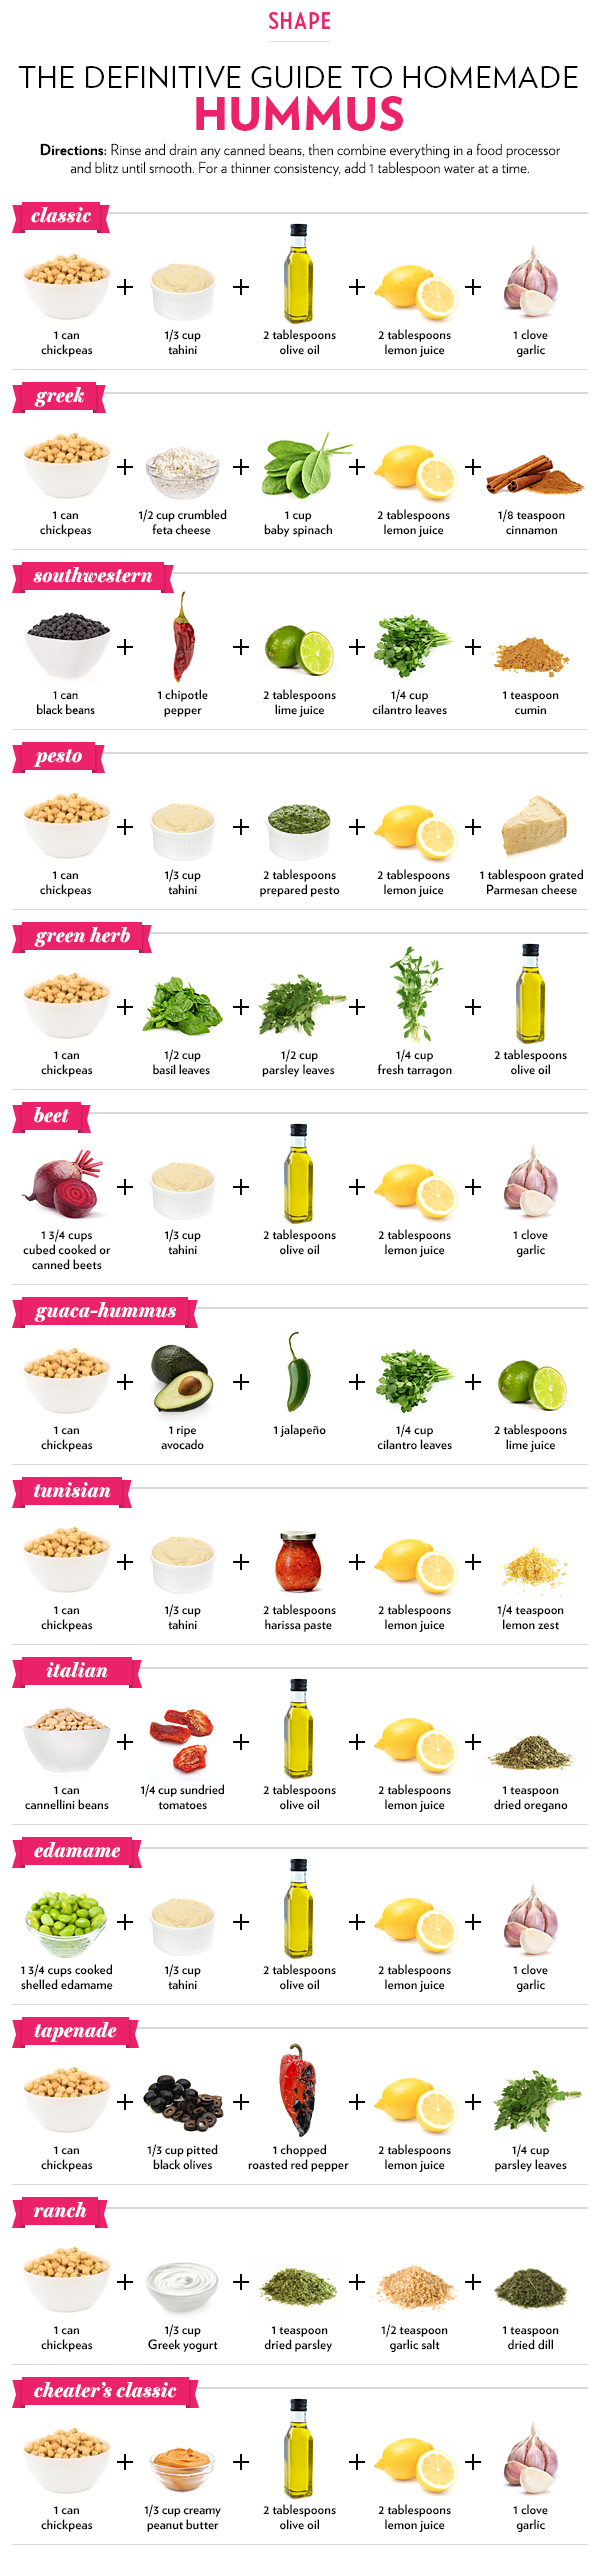 How To Make 13 Different Types Of Hummus At Home - Infographic